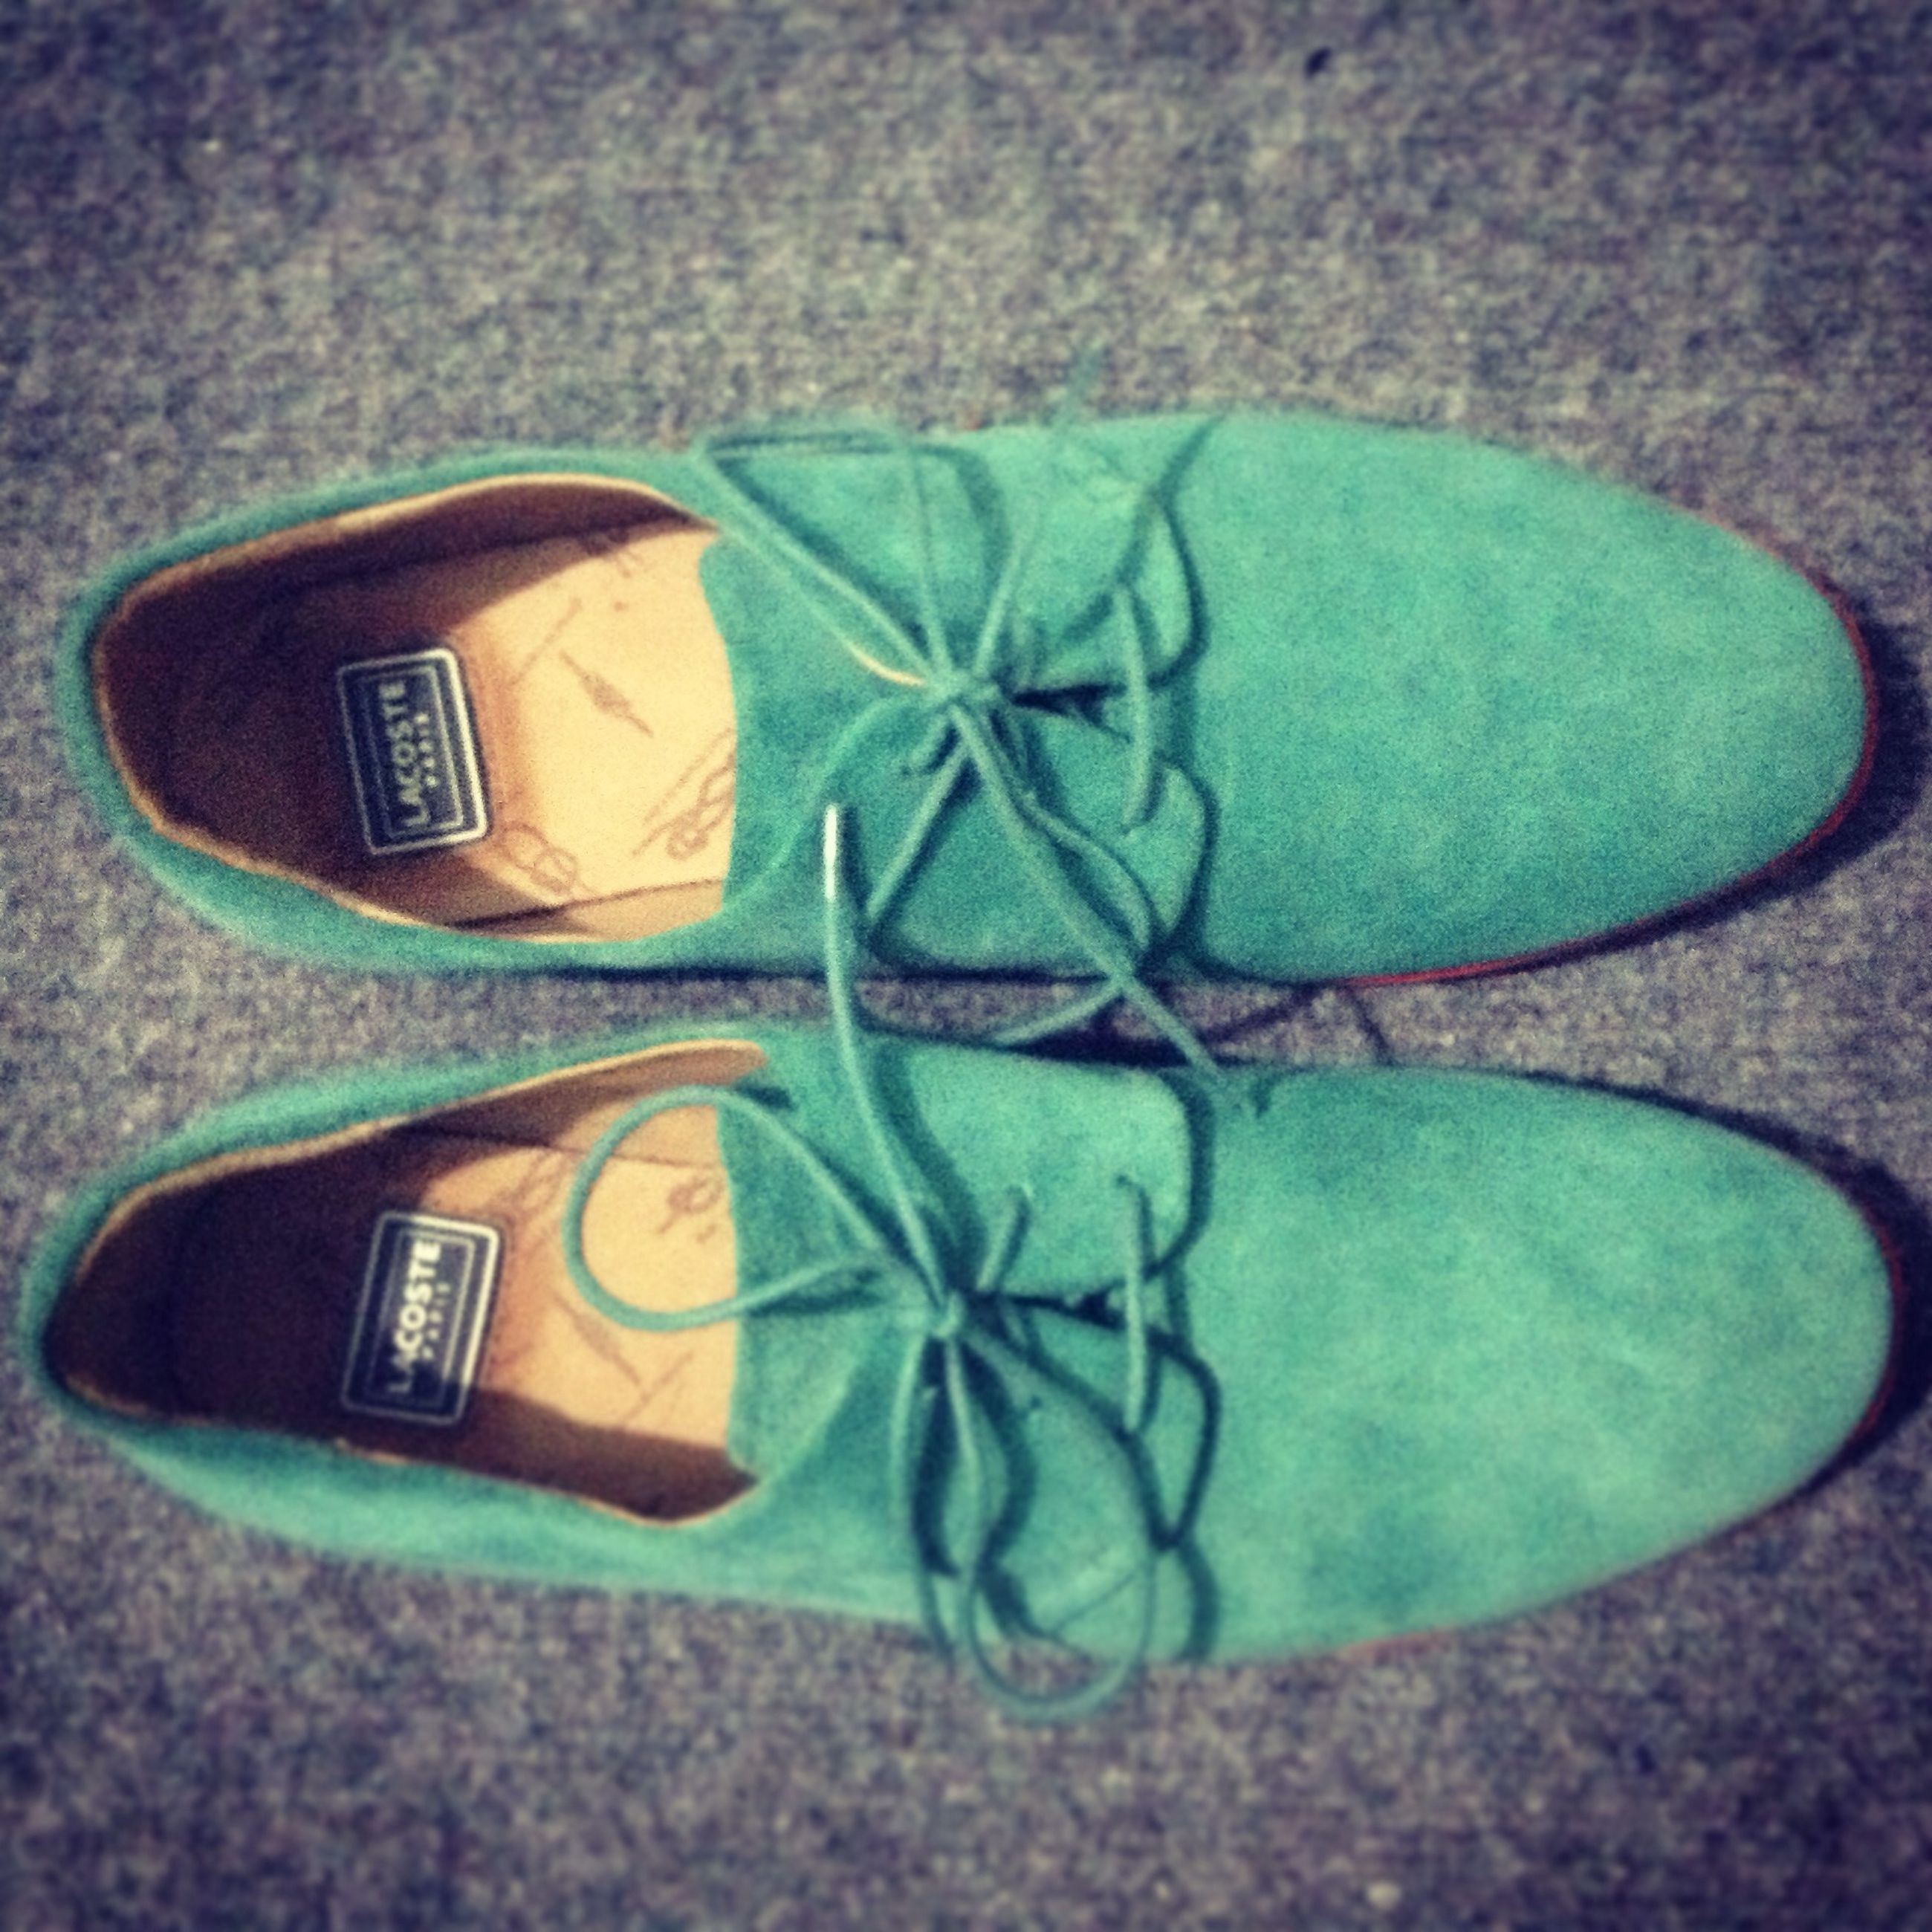 shoe, jeans, low section, pair, footwear, person, standing, green color, high angle view, blue, still life, close-up, canvas shoe, street, day, casual clothing, shoelace, outdoors